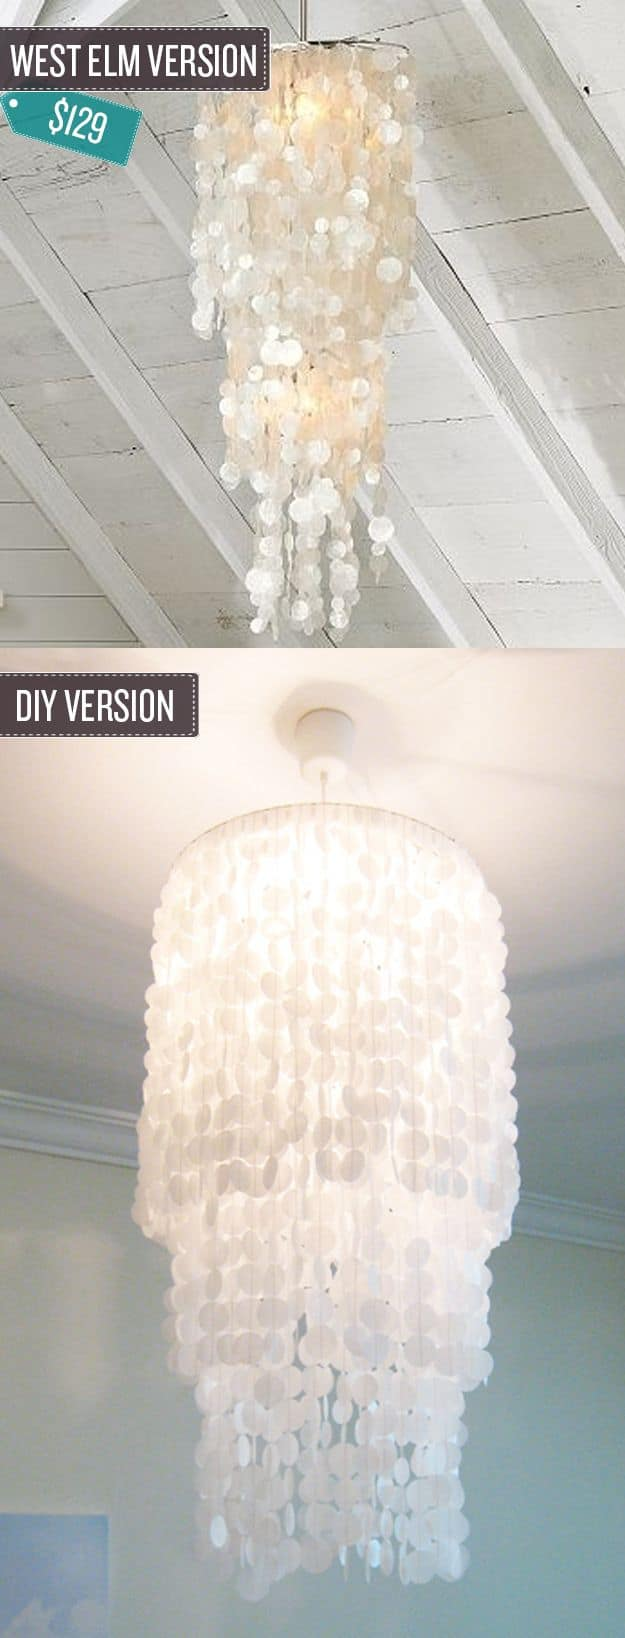 Searching for a DIY lighting idea for your bedroom? Then you'll definitely WANT to stop on by to check out these beauties! MUST PIN!